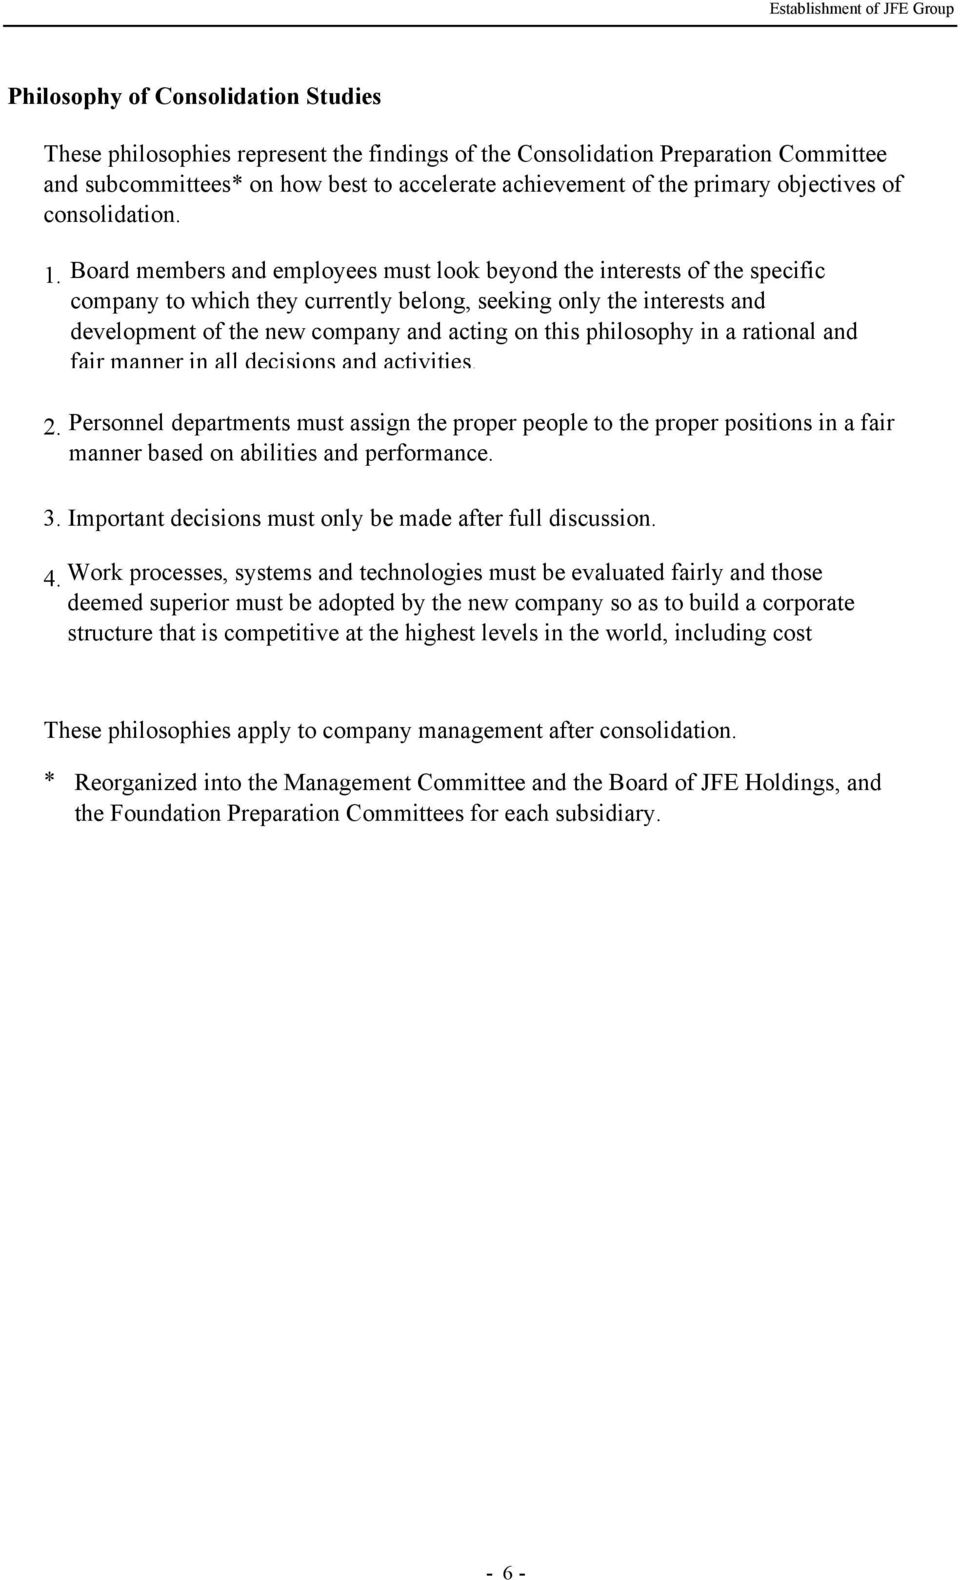 Board members and employees must look beyond the interests of the specific company to which they currently belong, seeking only the interests and development of the new company and acting on this